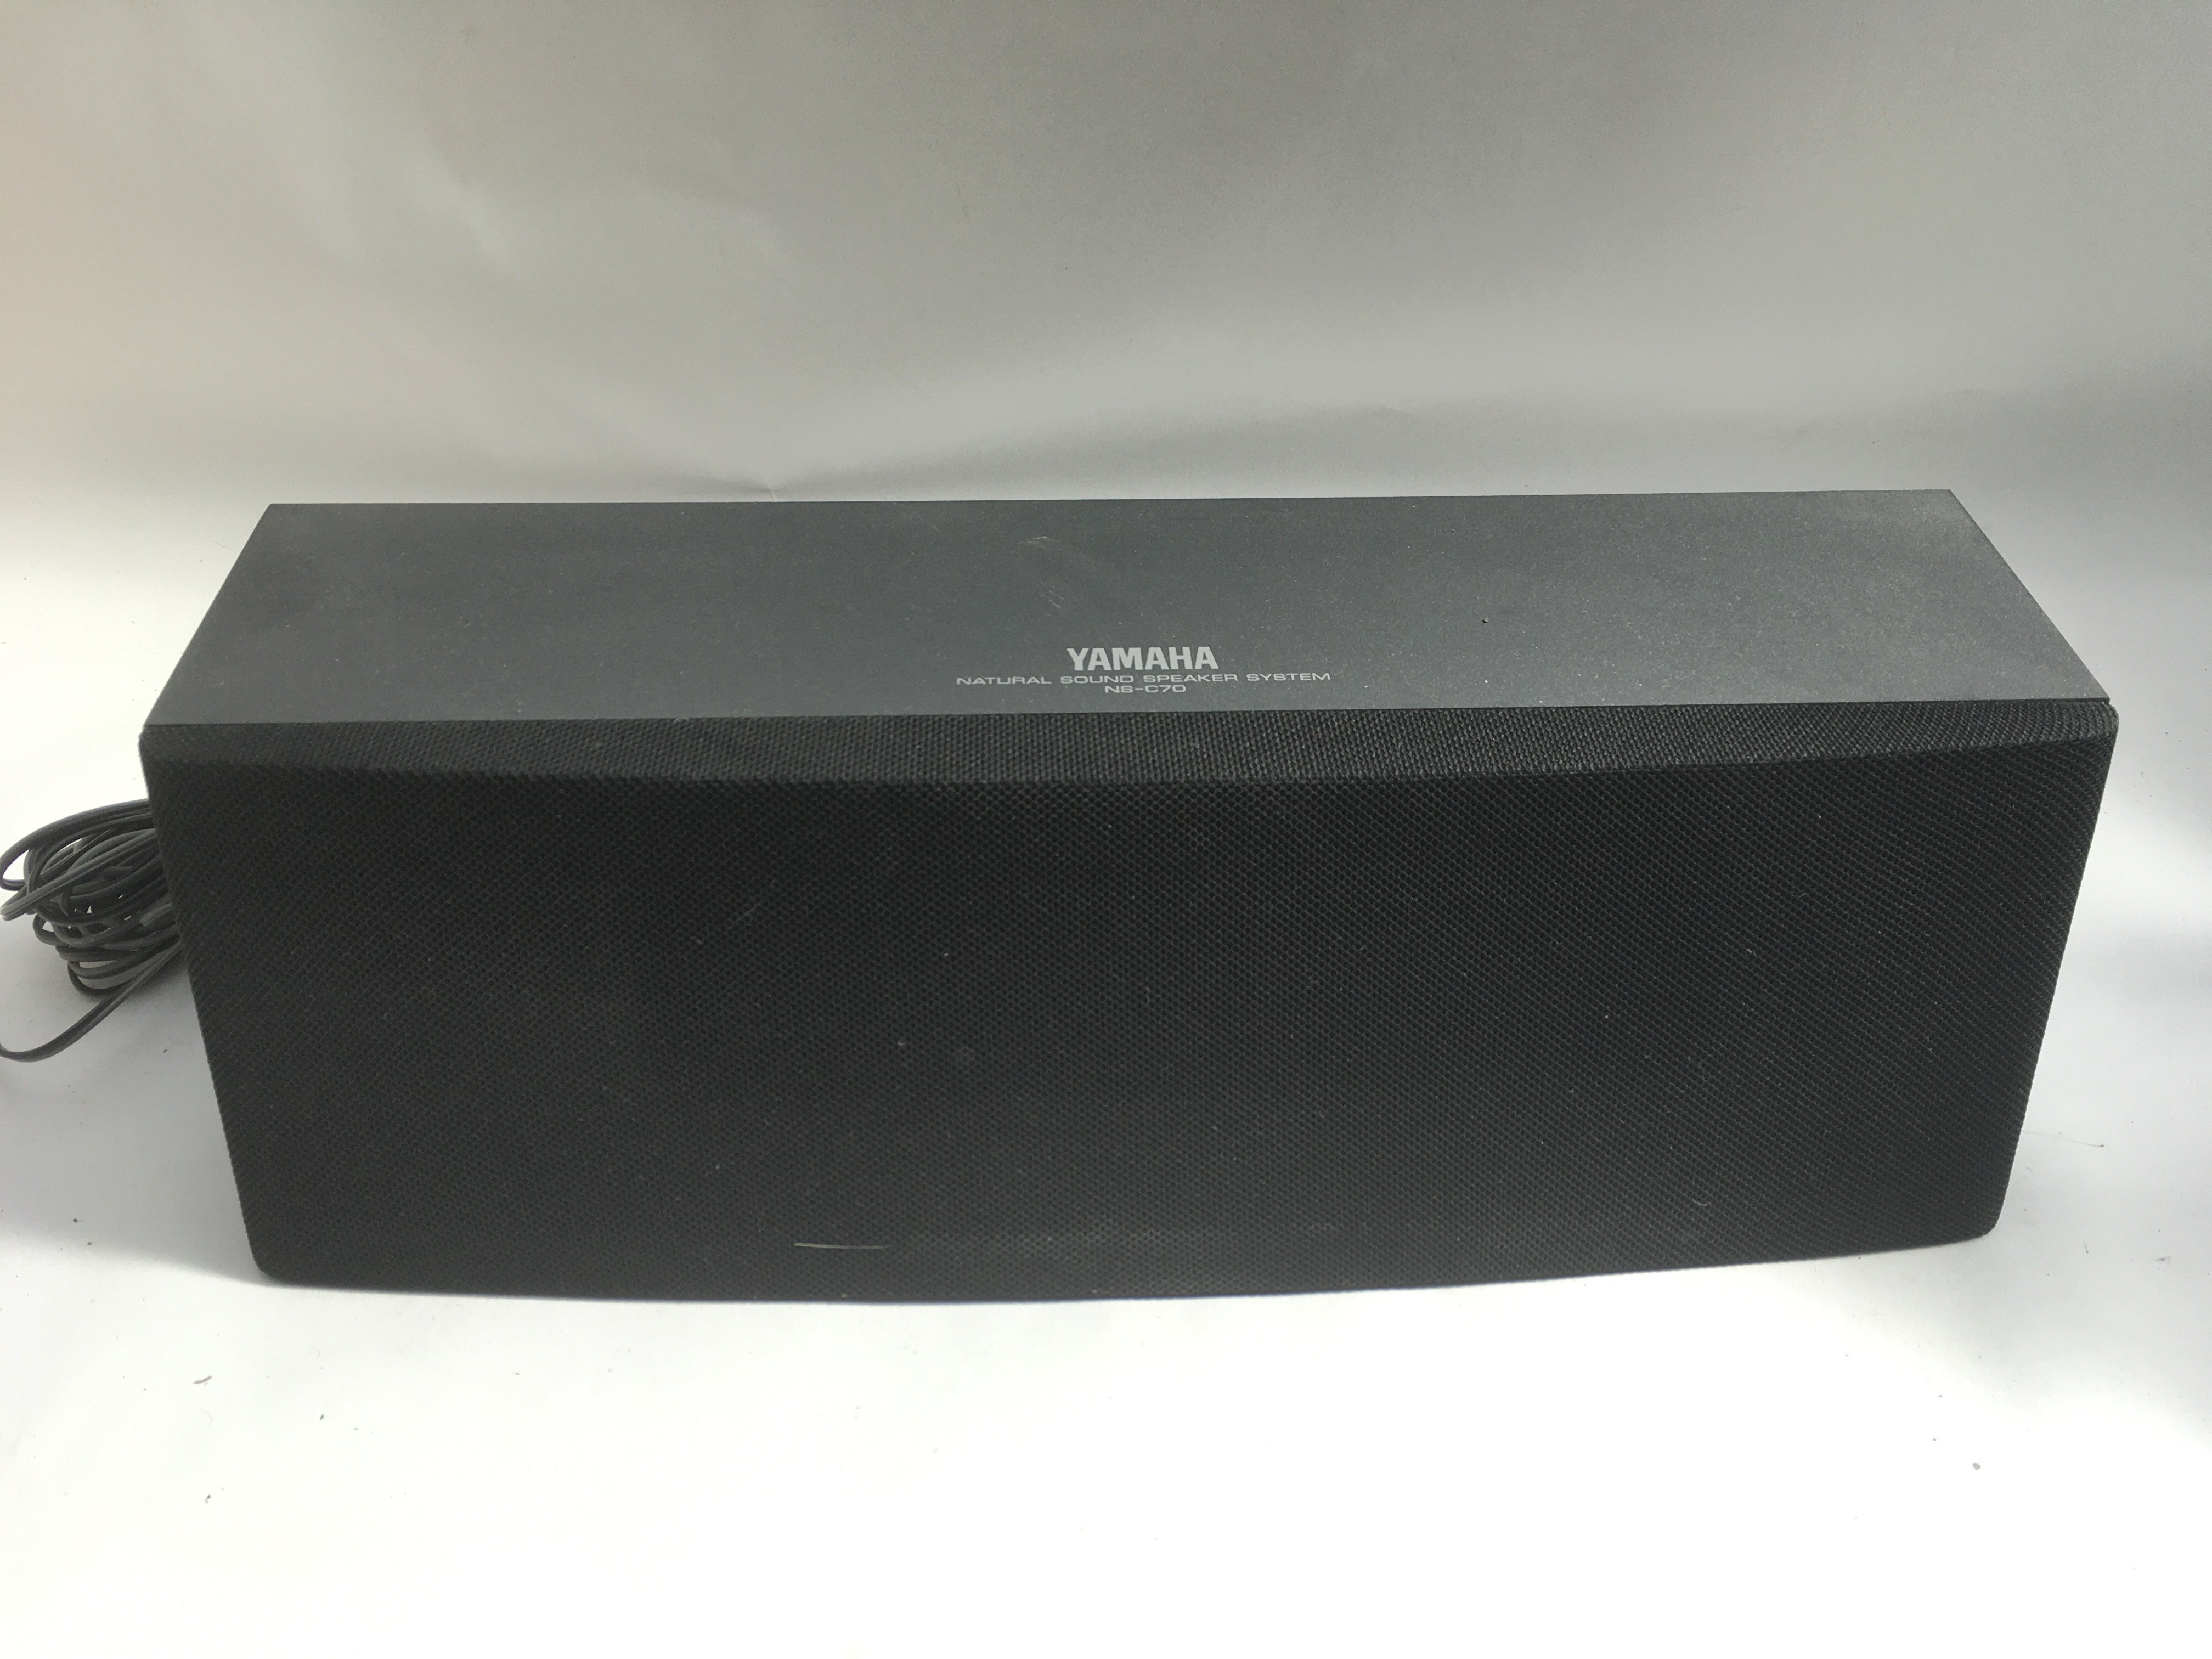 A Yamaha Hi Fi amplifier DSP A3090 with remote con - Image 2 of 3